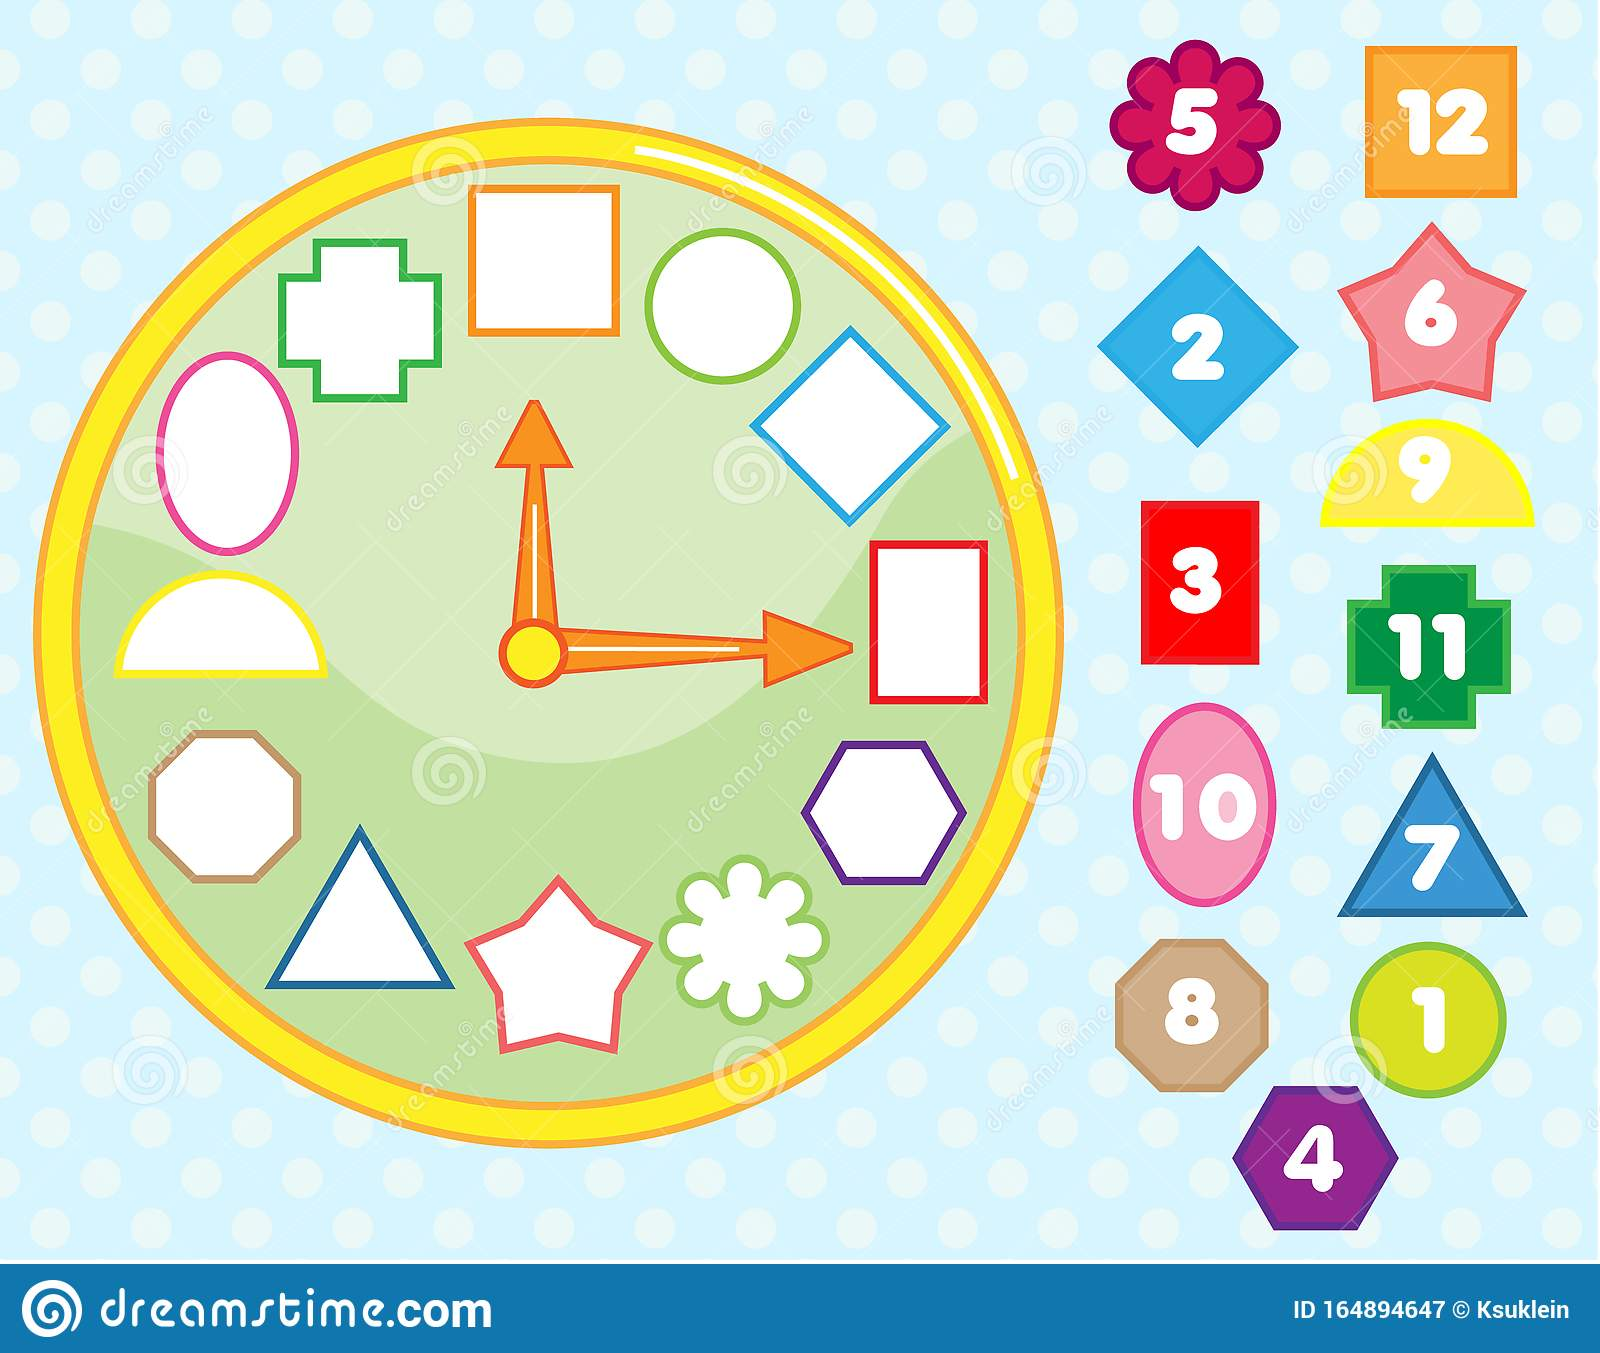 Matching Children Educational Game Clock Puzzle Shape